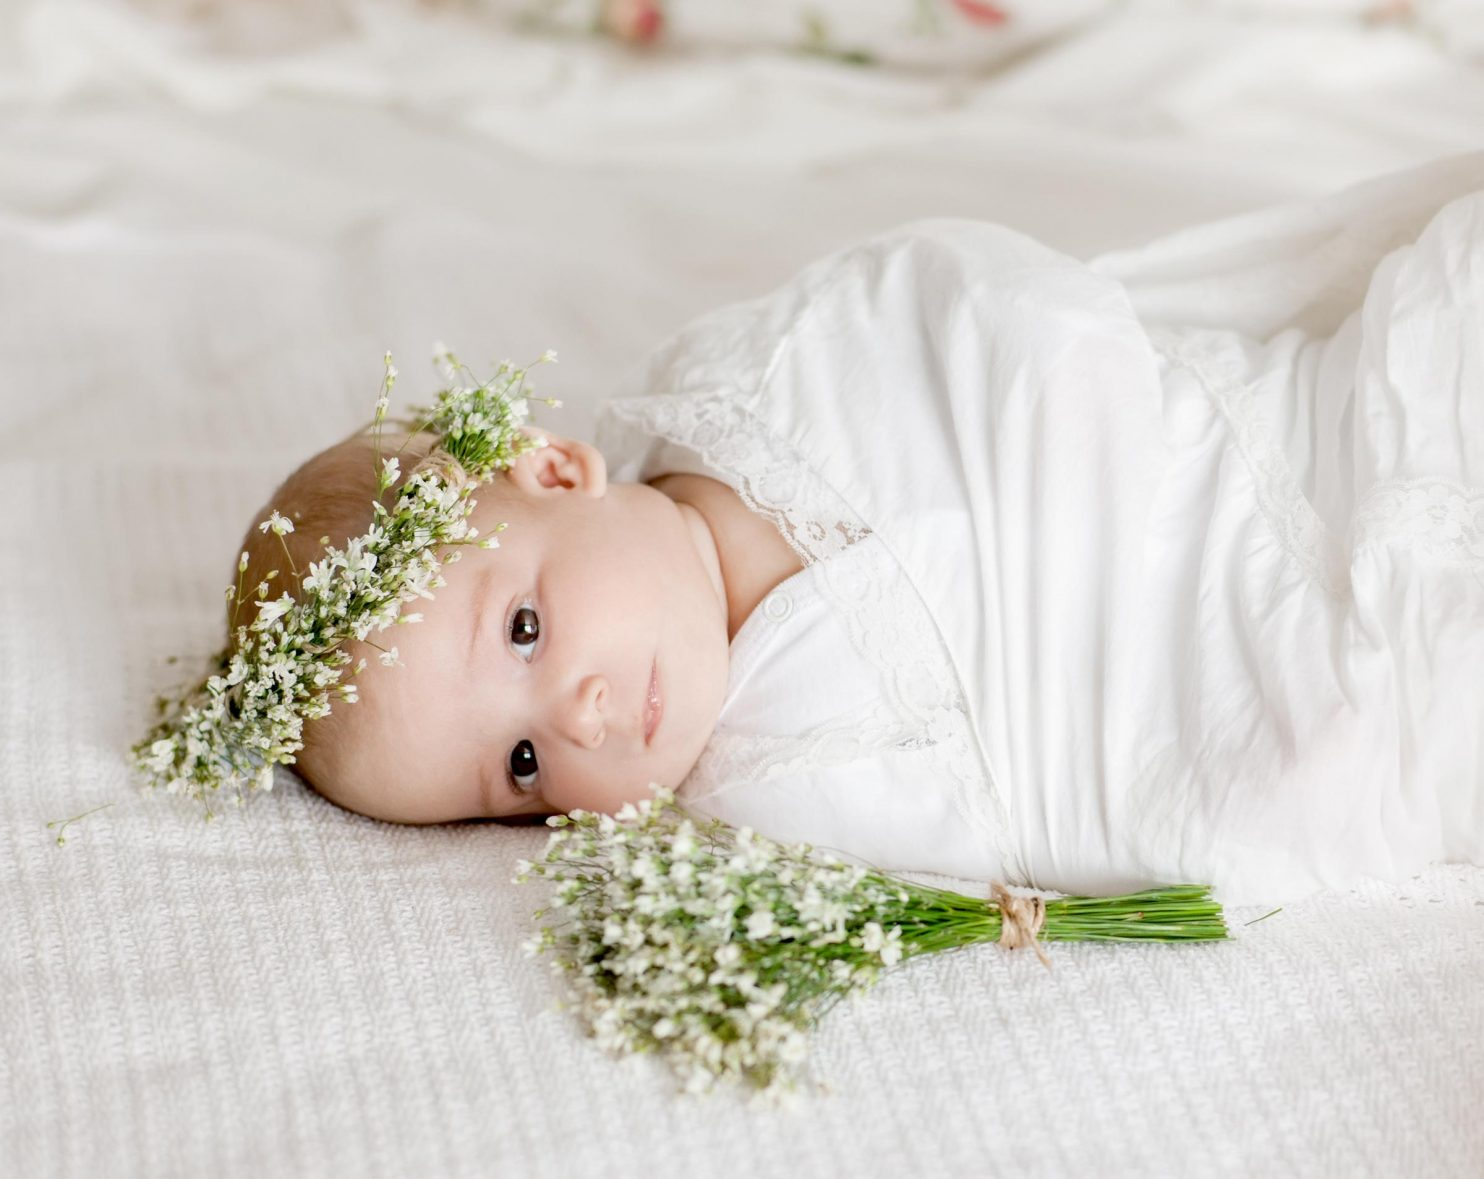 Baby swaddled in a white blanket, wearing a flower crown of baby's breath, laying on a bed